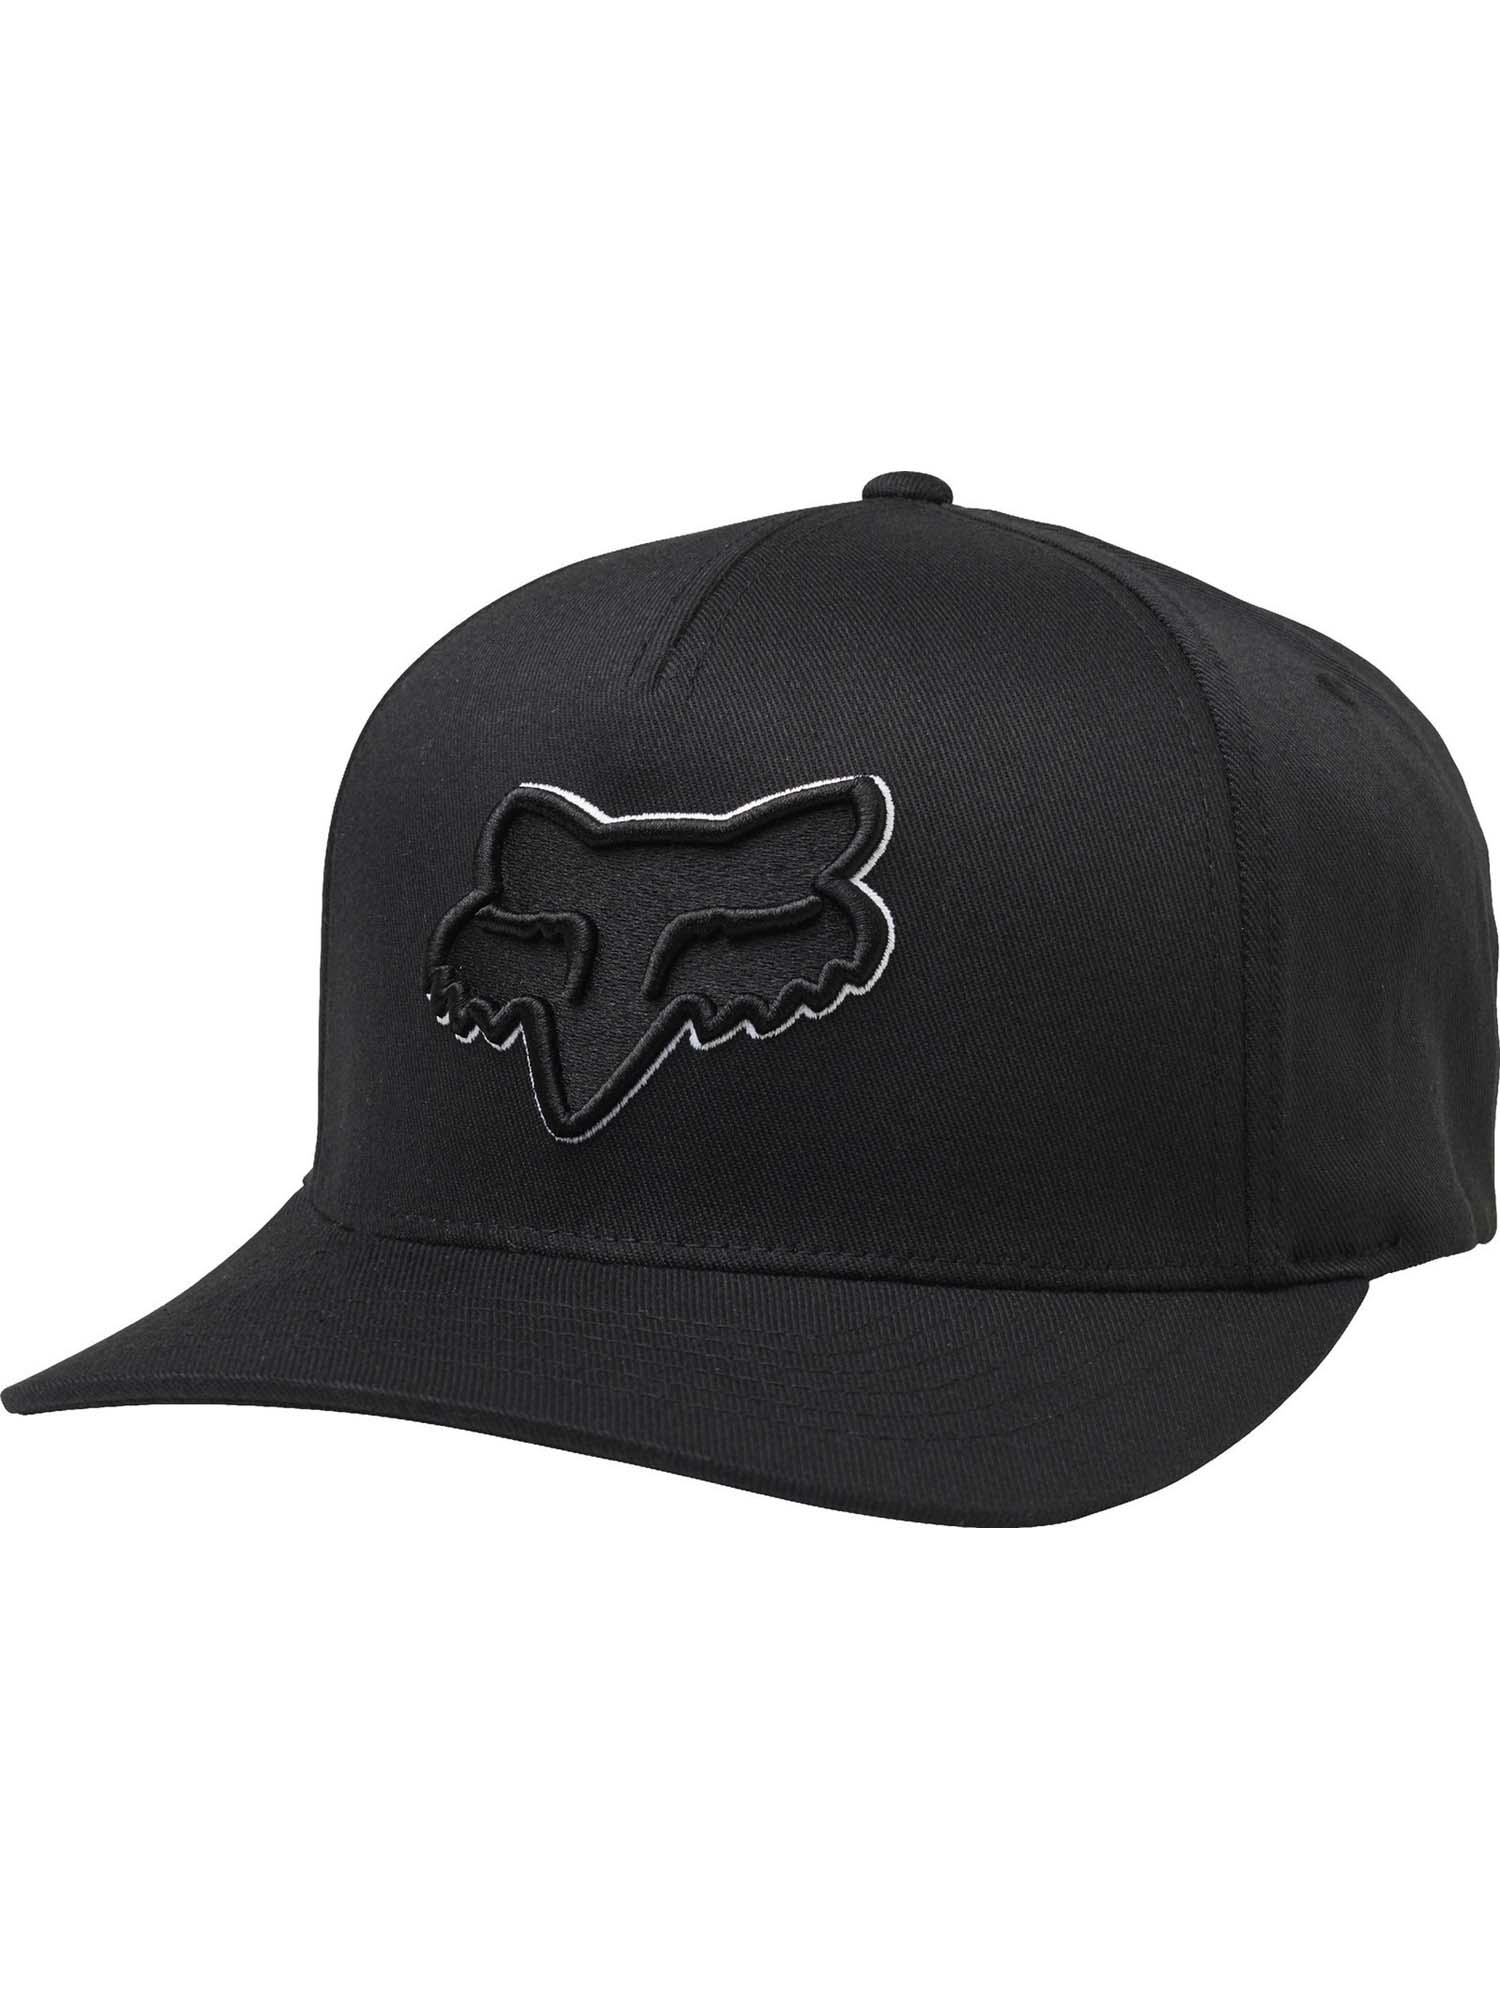 Black//White Fox Racing Mens Epicycle Flexfit Hat